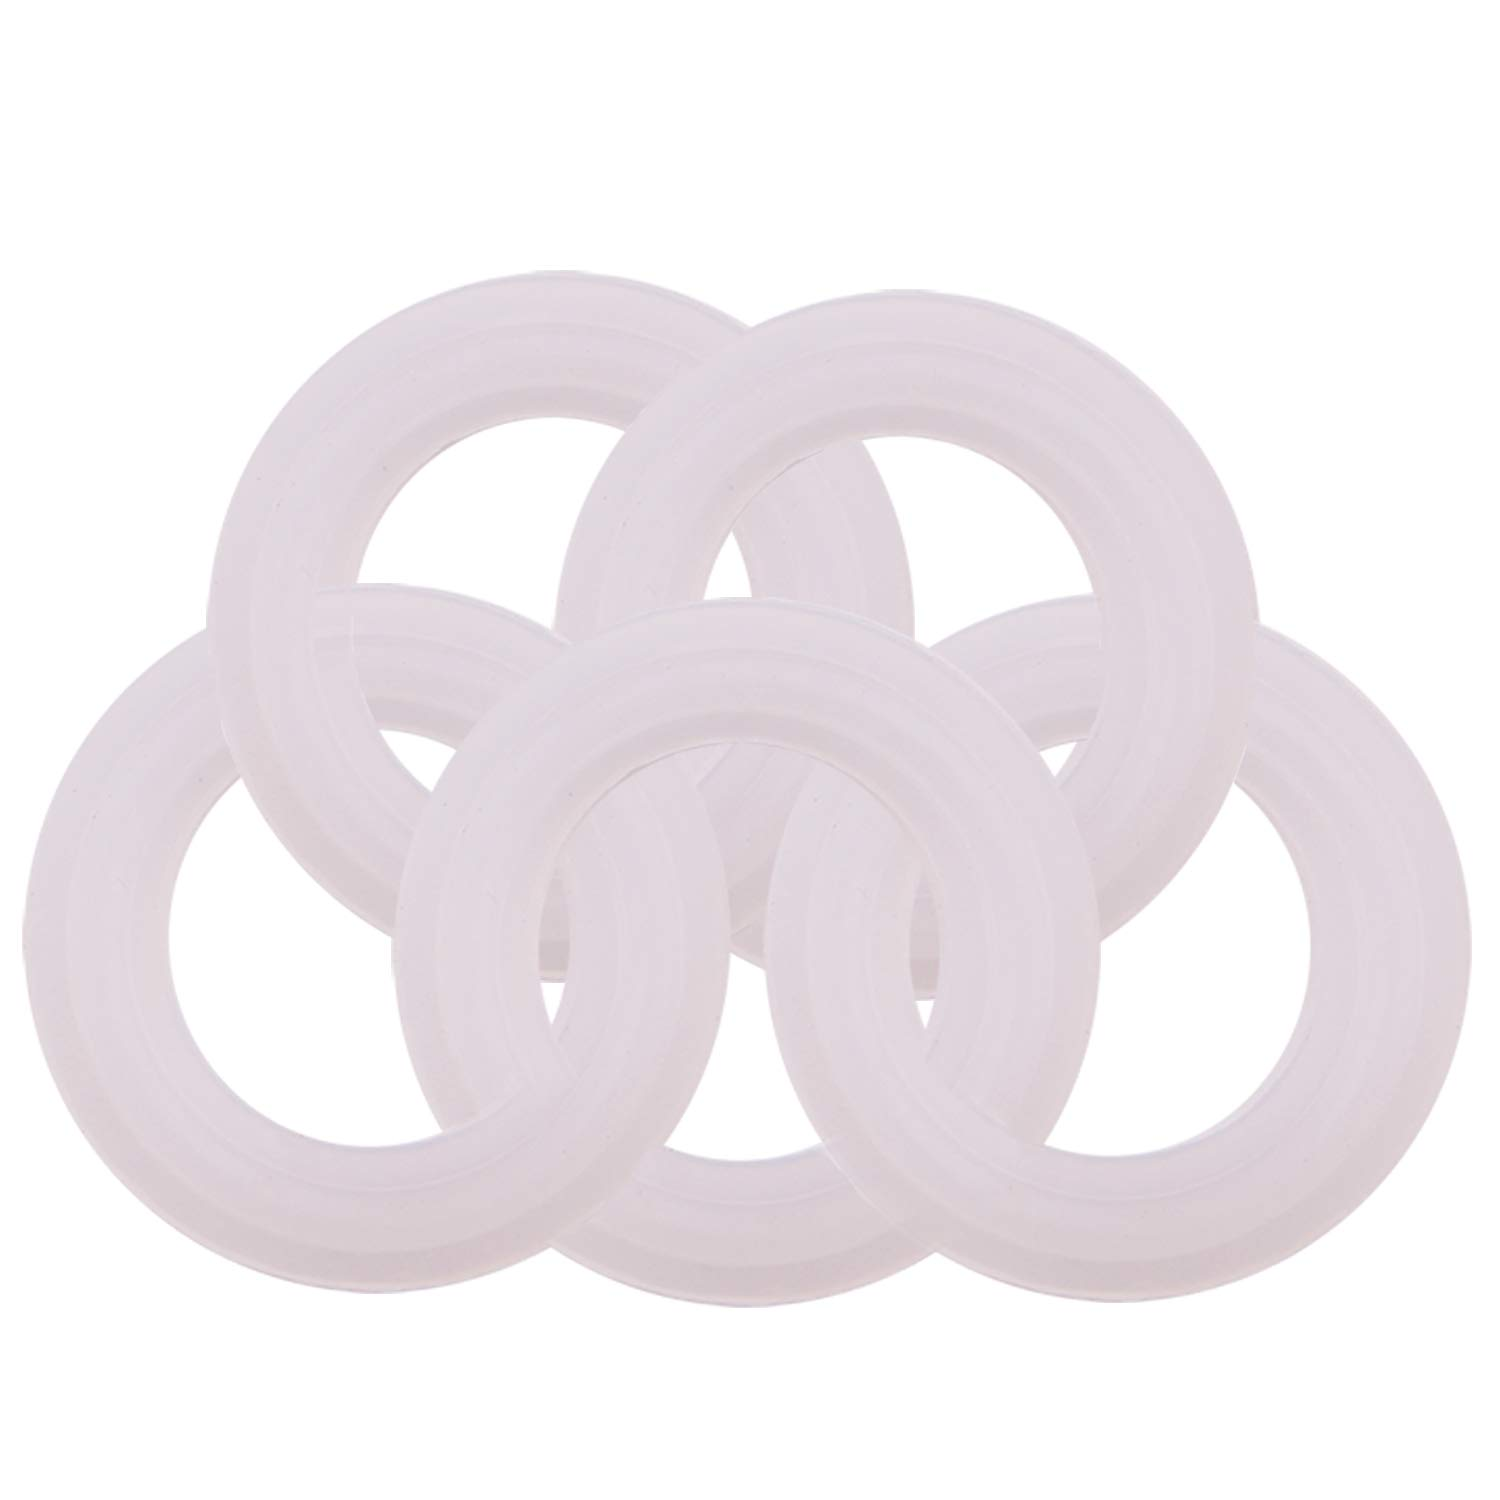 DERNORD Silicone Sanitary Gasket 3//4 Tri-Clamp O Rings 0.62 Inch ID 0.86 Inch OD Pack of 10